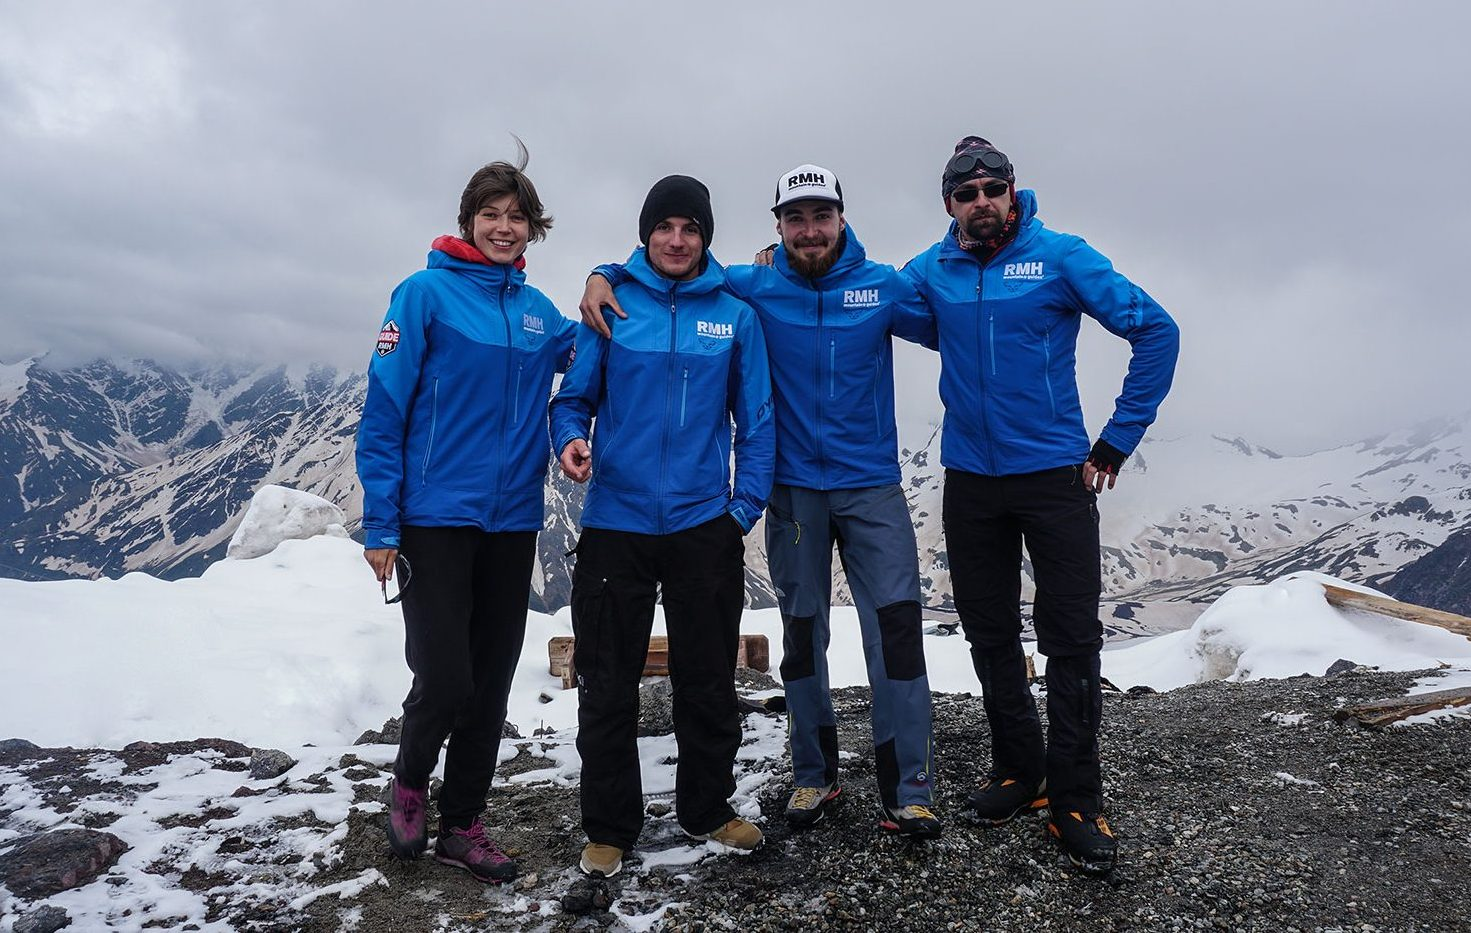 RMH Elbrus Local Guides | Russian Mountain Holidays (RMH)